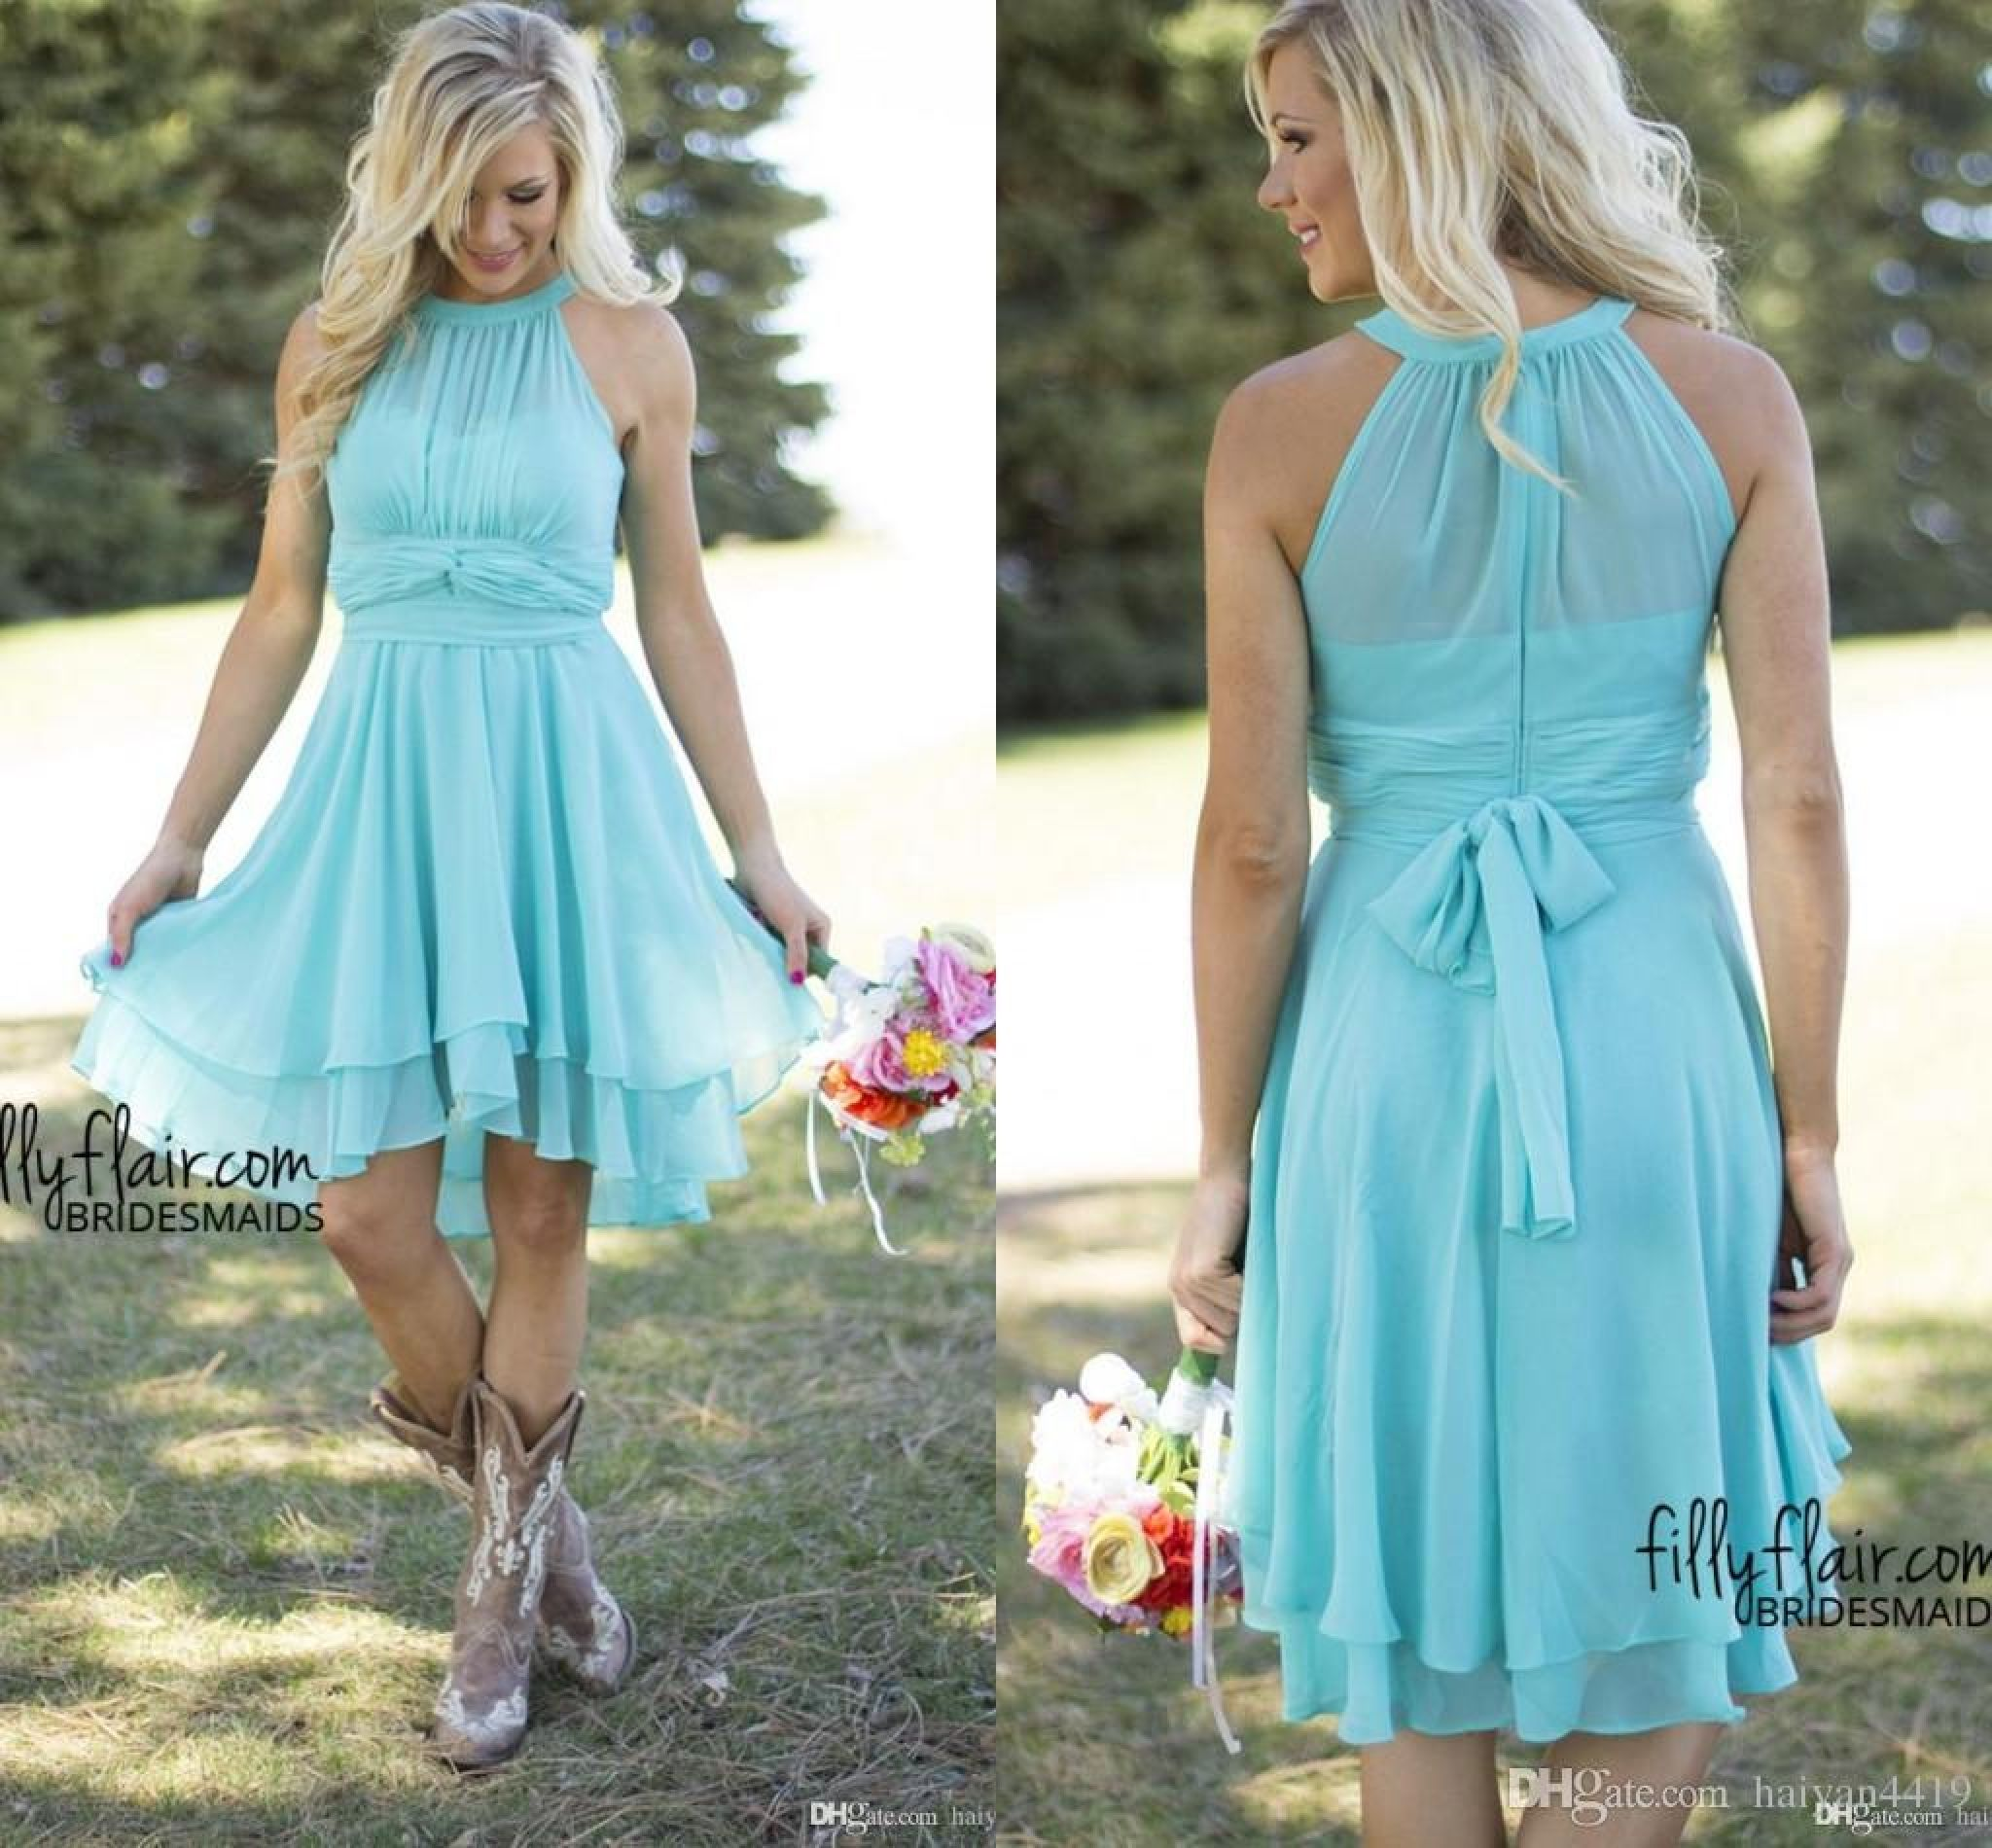 Jcpenney dresses for wedding guest  jcpenney wedding guest dresses  dresses for wedding party  Dresses